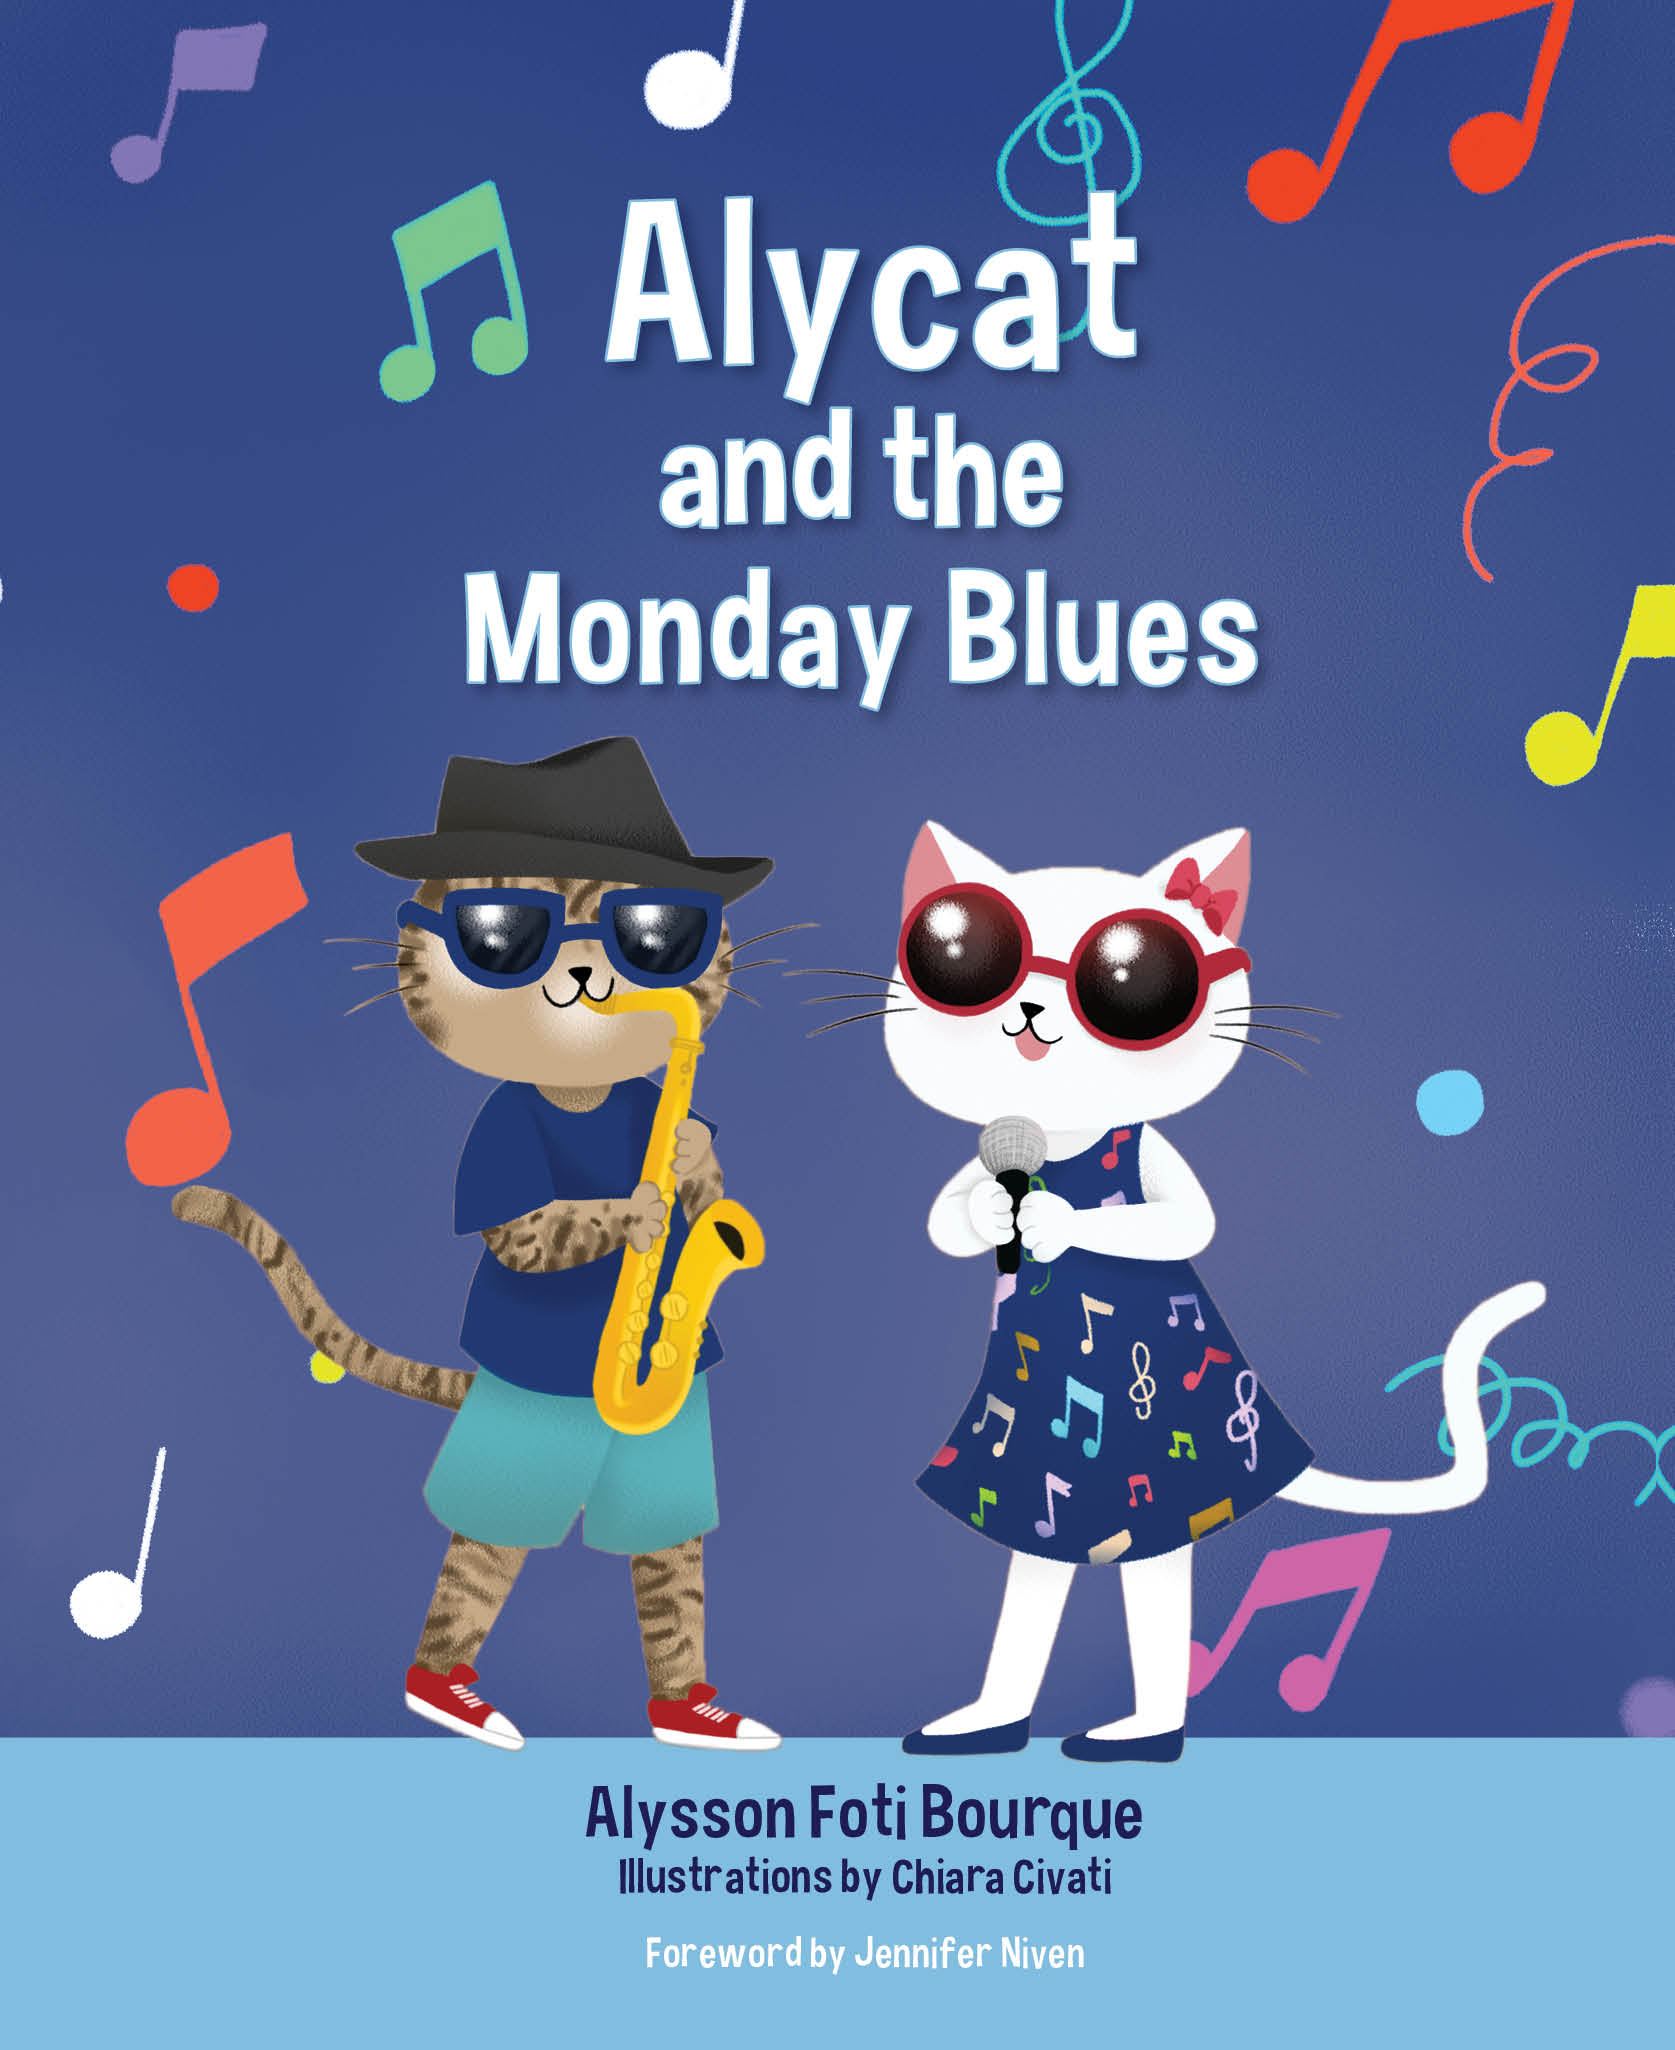 AlycatandtheMondayBlues_Amazon